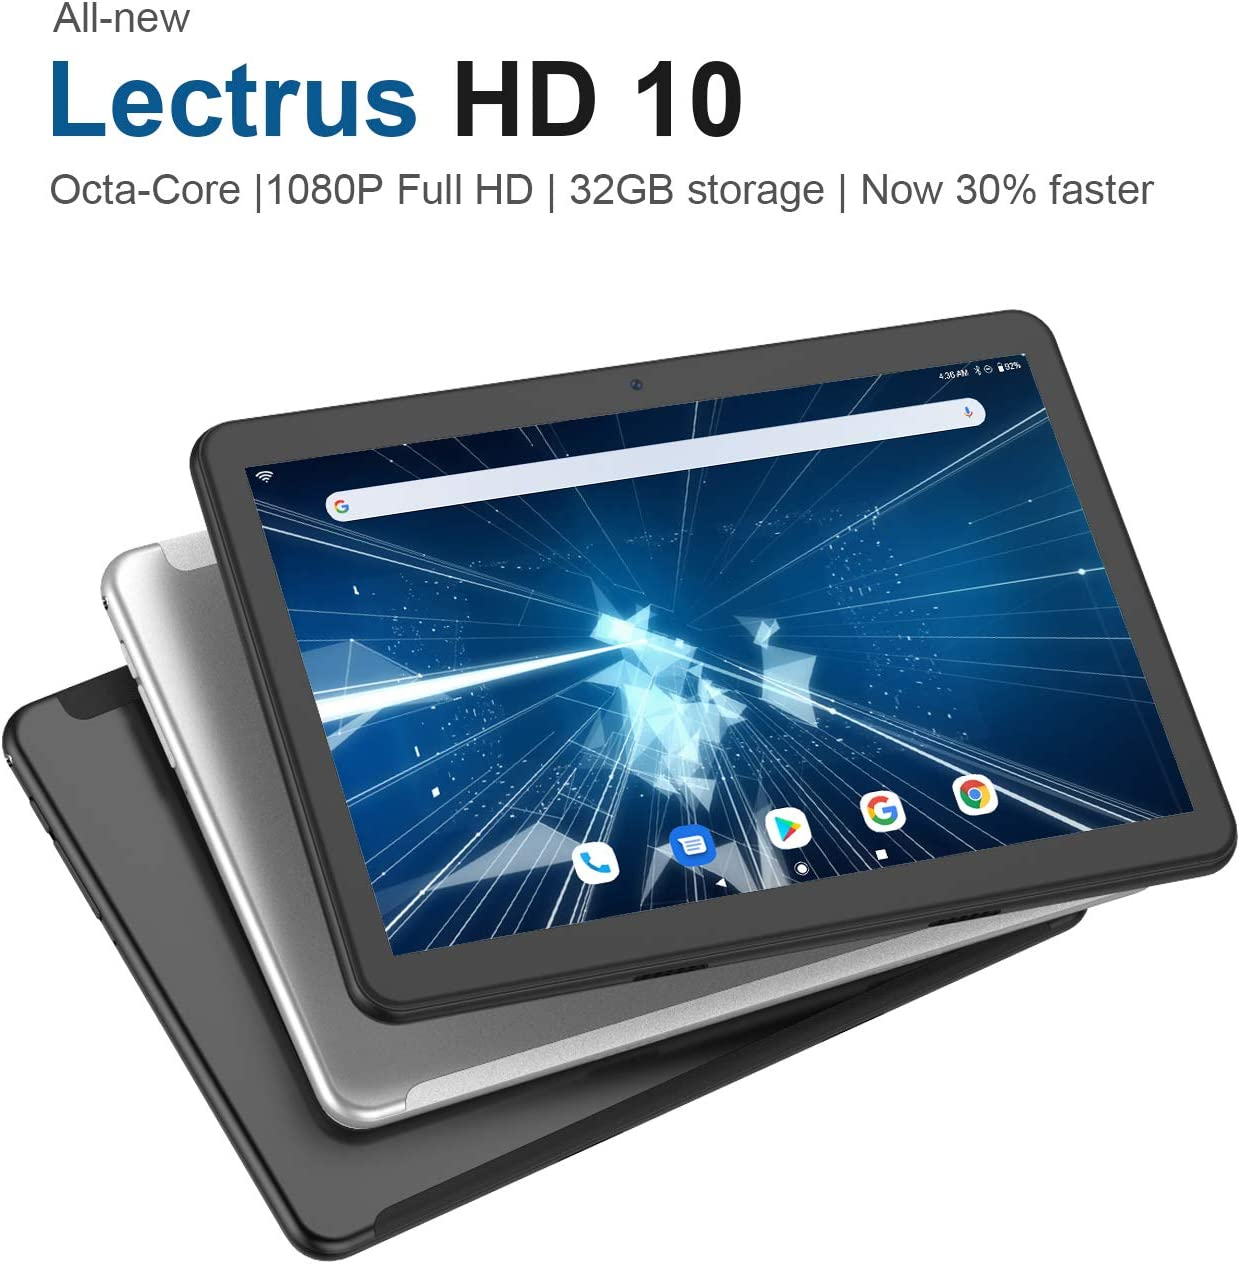 "Lectrus Tablet Android 9.0 (10.1"" 1080p Full HD Display, Octa-Core,5G WiFi Tablets,32GB) – Black"